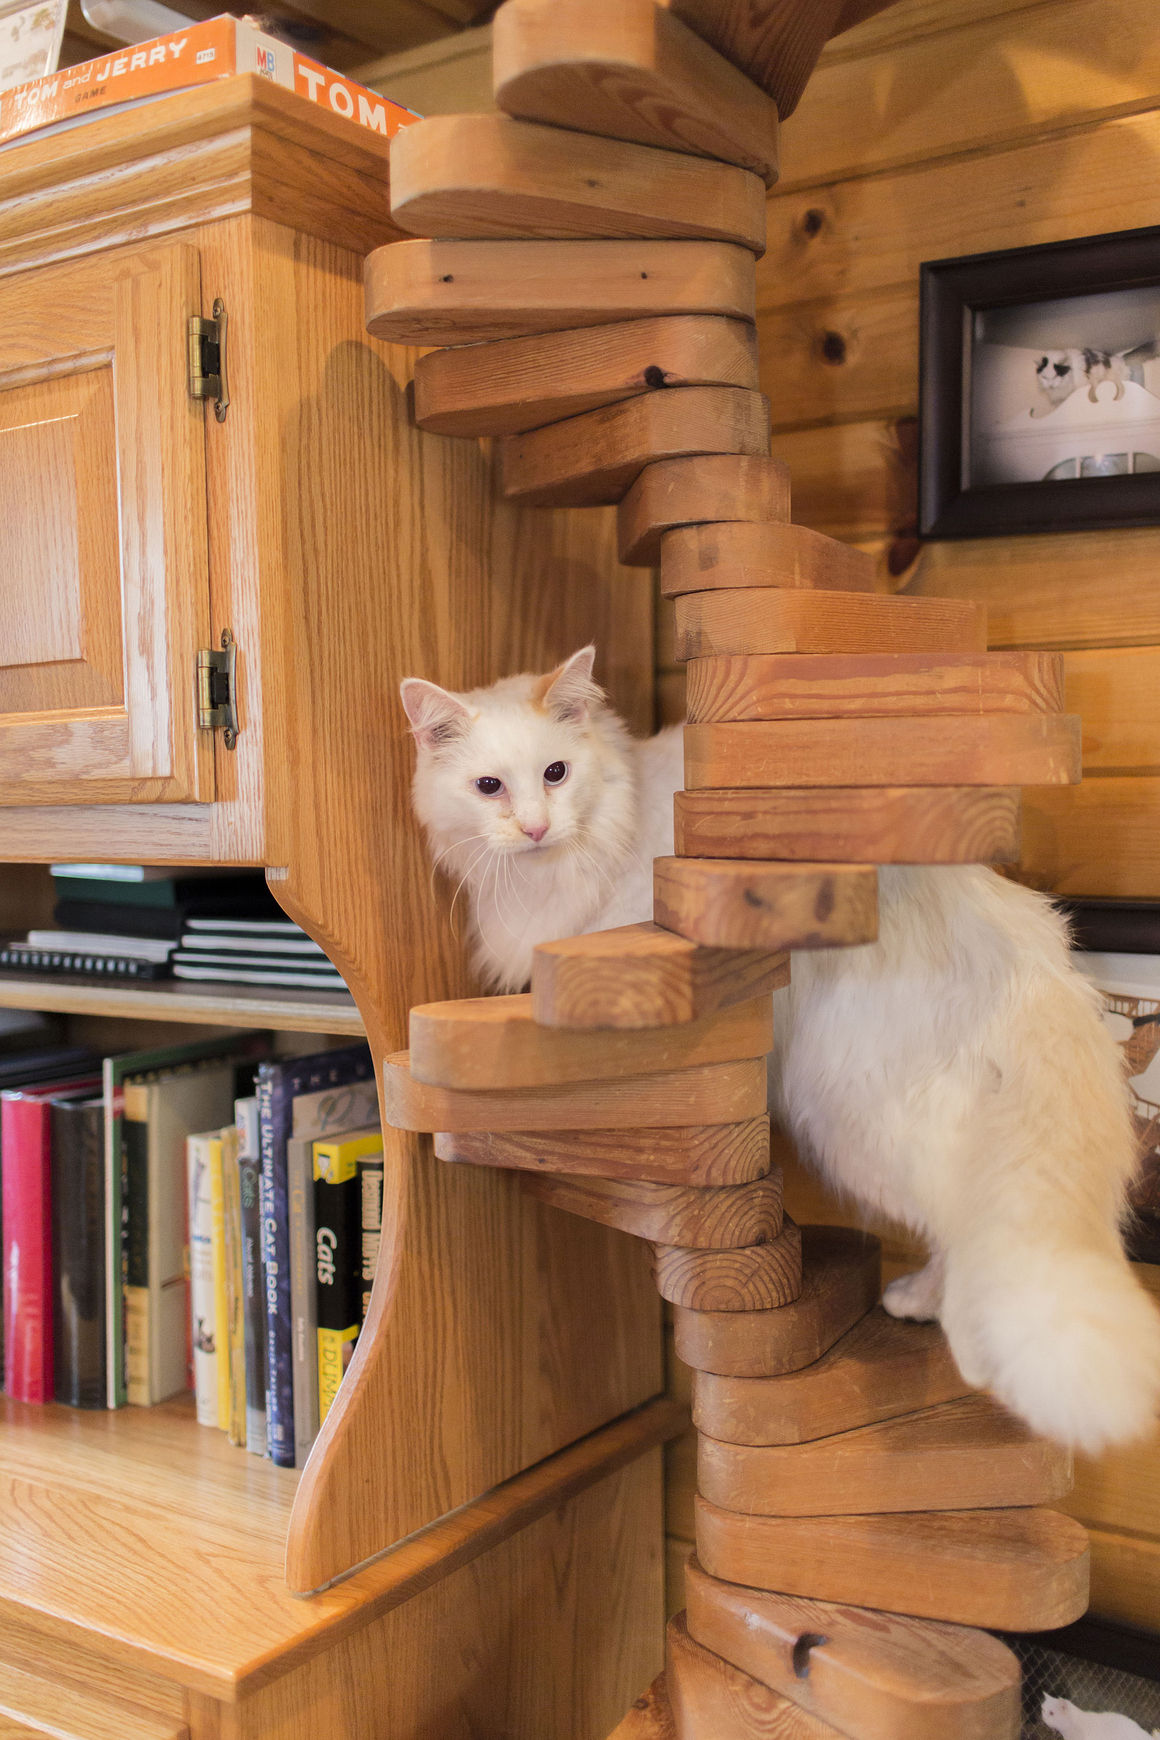 Catify to Satisfy Simple Solutions for Creating a Cat-Friendly Home